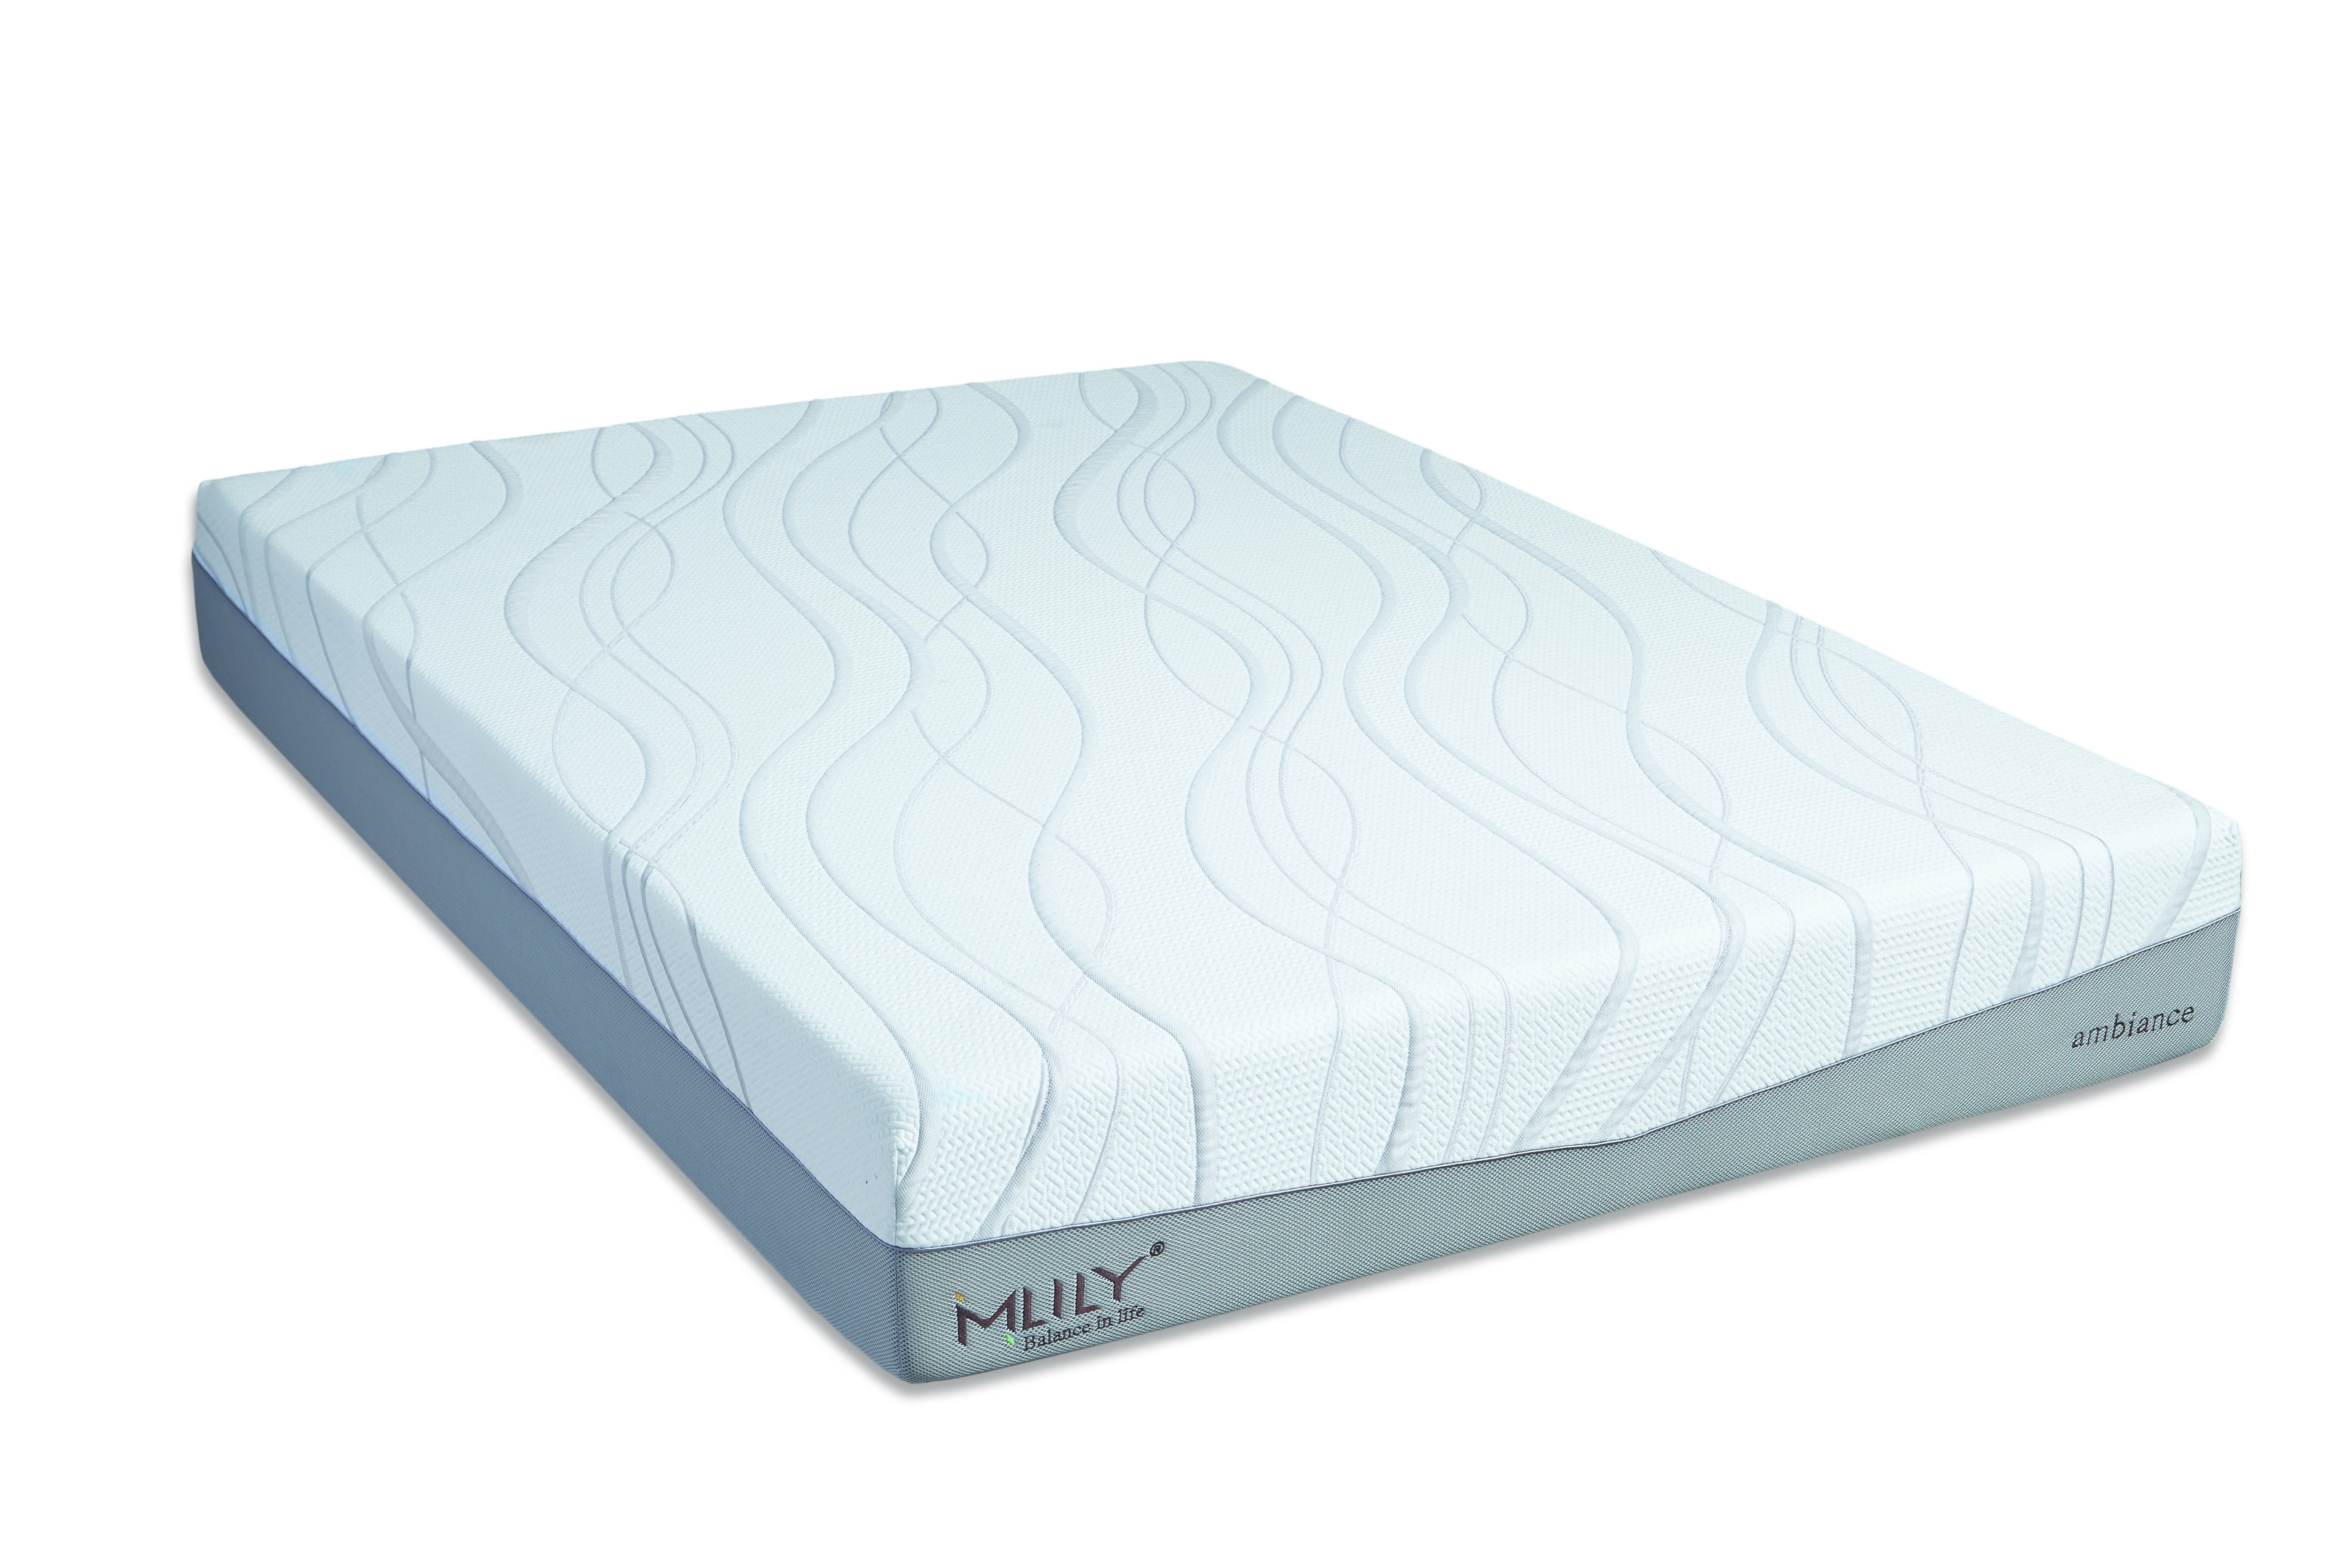 Memory Foam And Gel Mattress Ambiance 11 Inch Temperature Neutral Memory Foam W Gel Mattress By Mlily